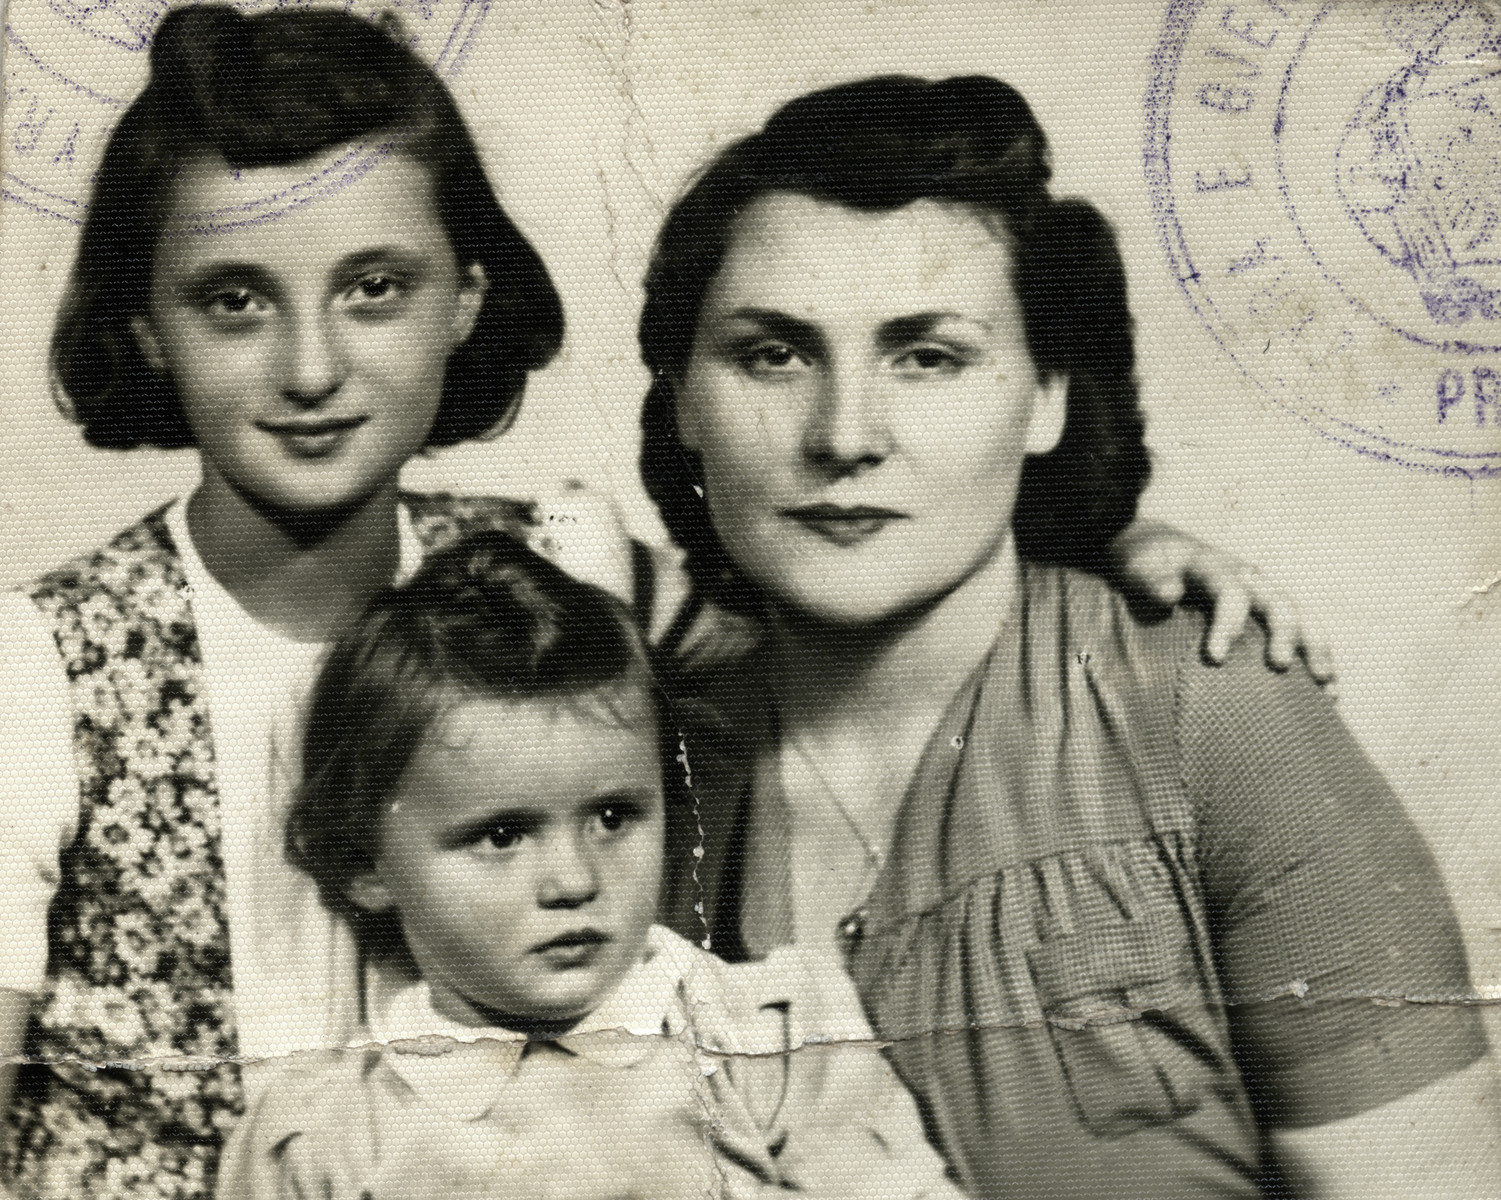 Portrait of rescuer Ana Jakic with her daughters Bizerka and Ivana.